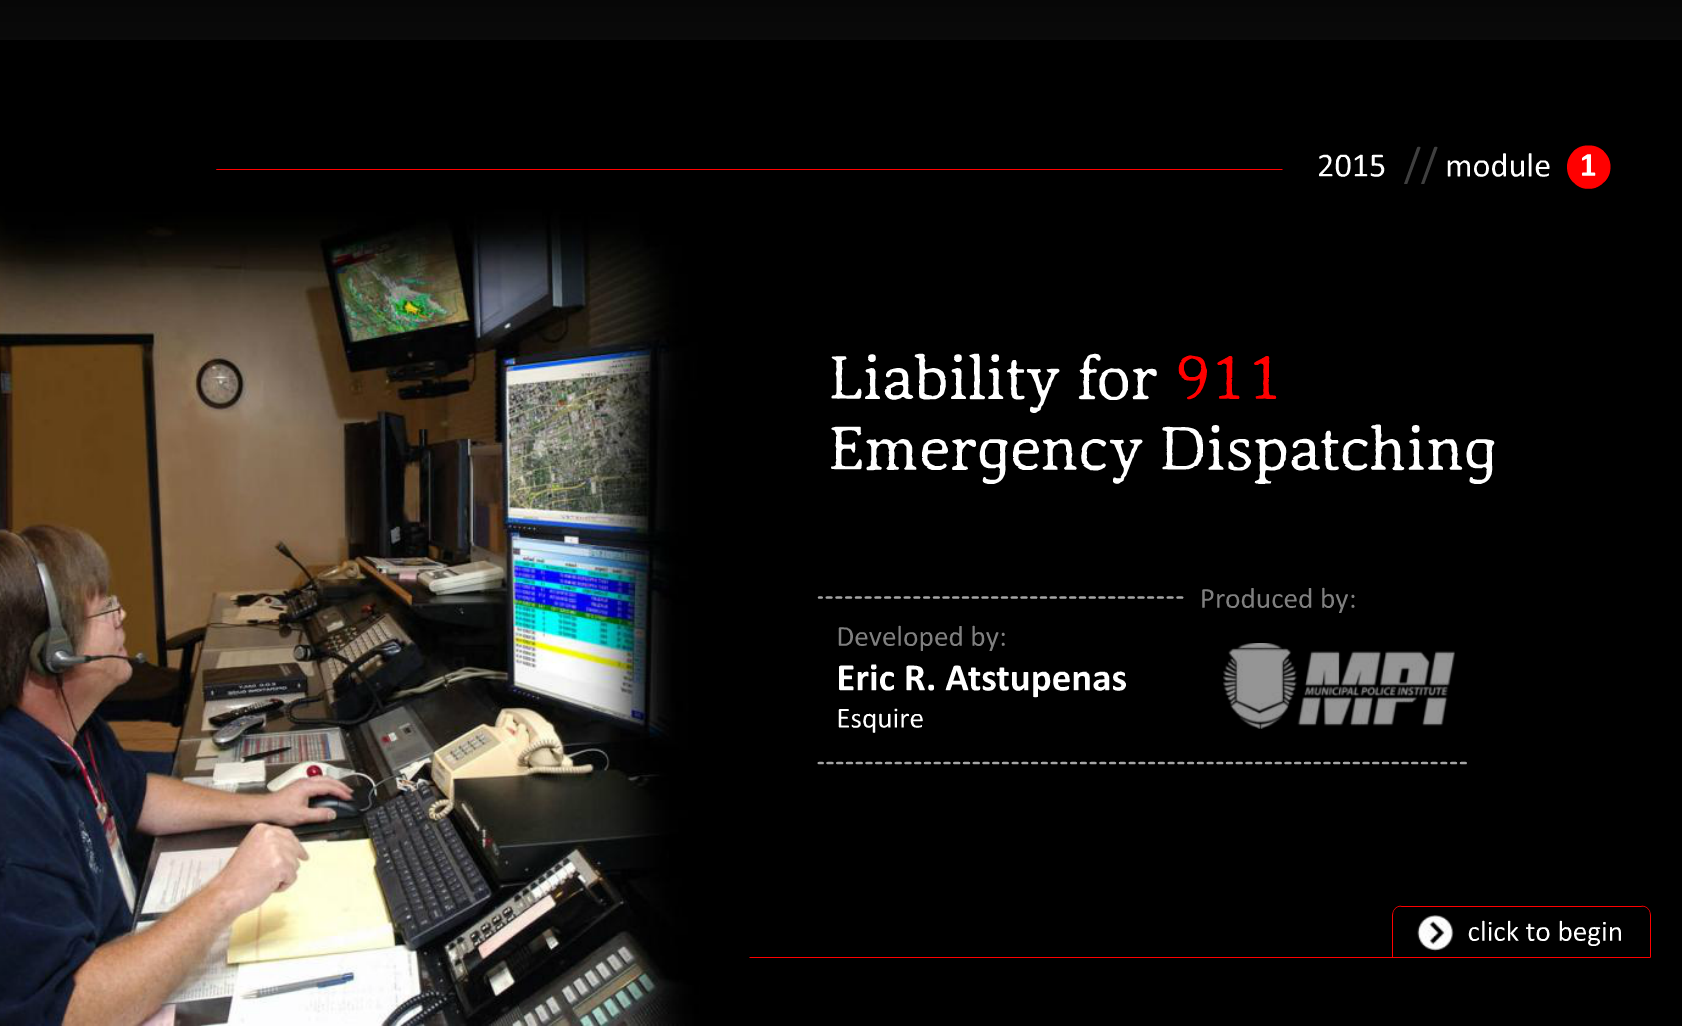 Liability for 911 Emergency Dispatching